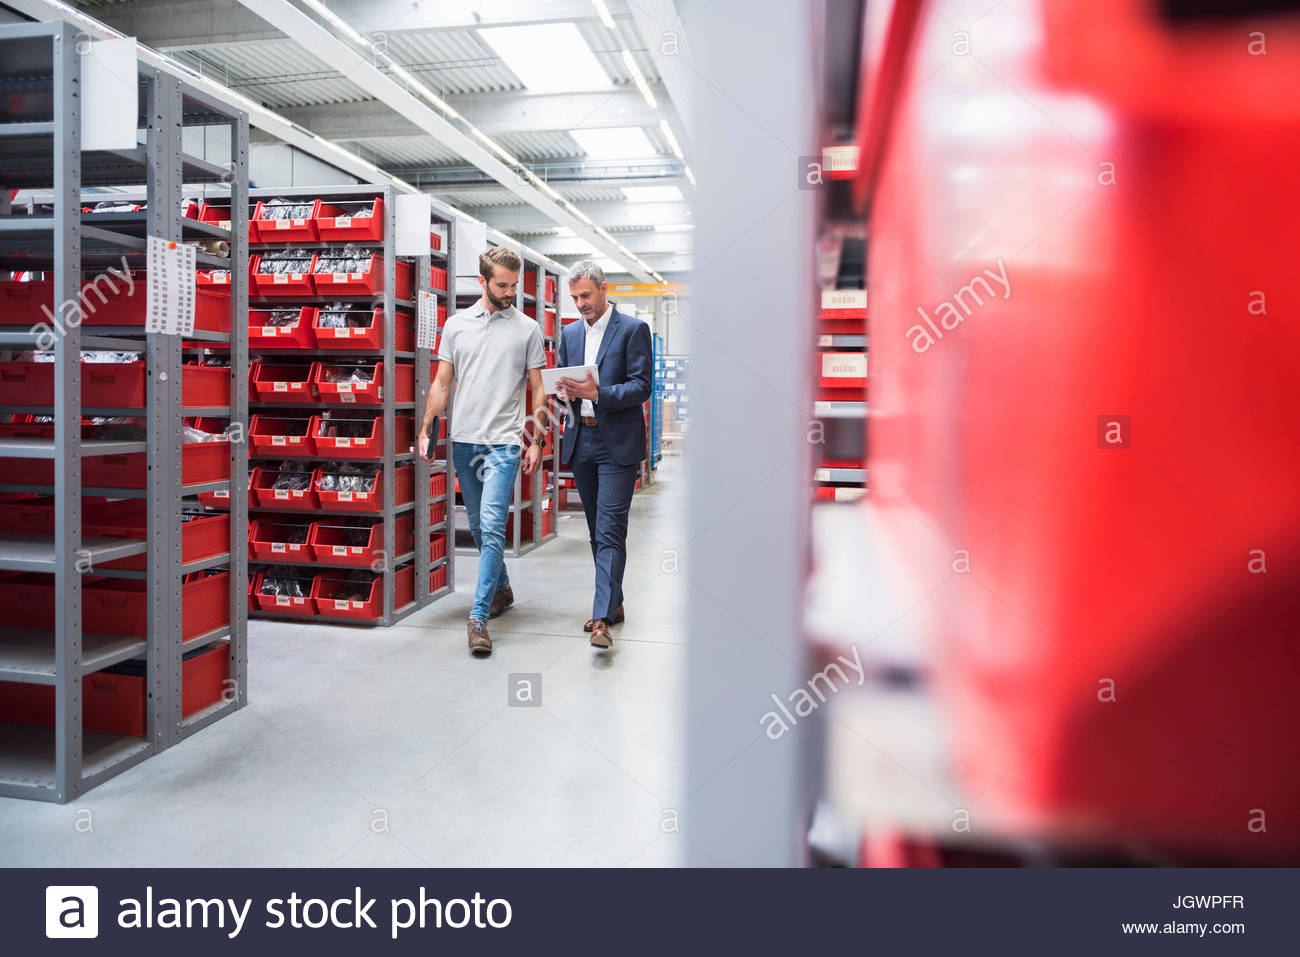 Manager and warehouse worker walking and talking in distribution warehouse - Stock Image